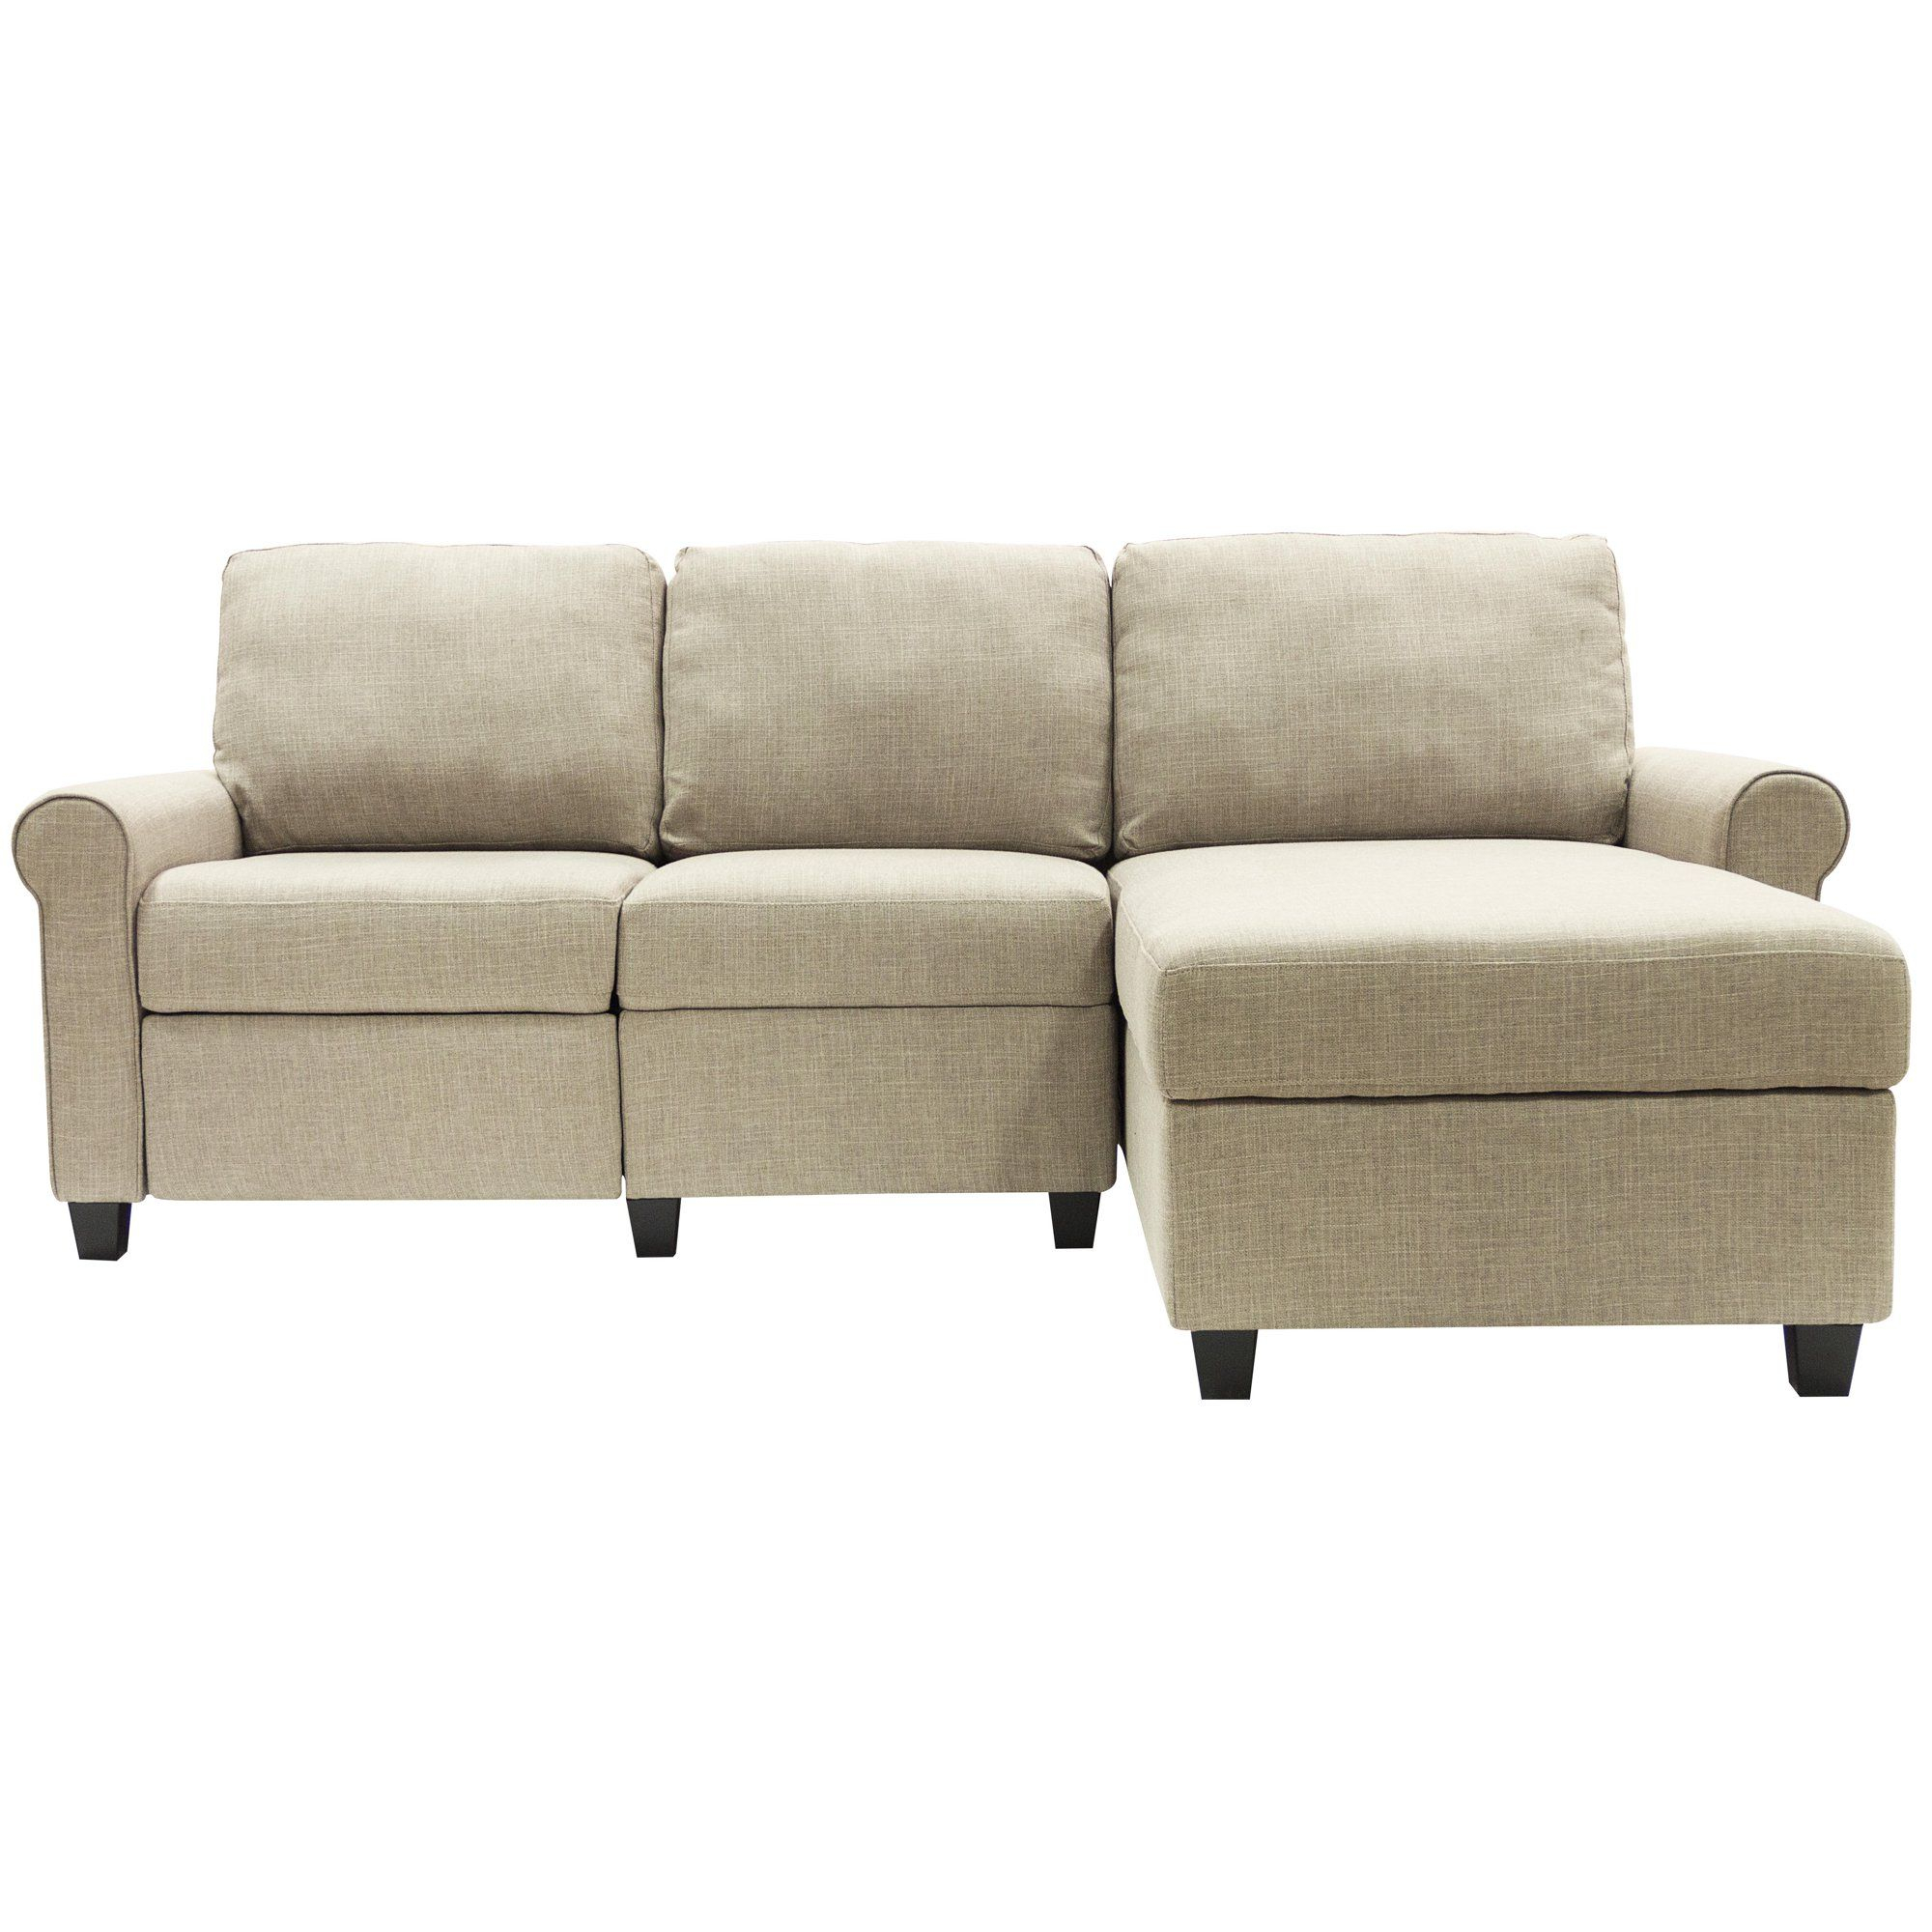 Serta Copenhagen Reclining Sectional With Right Storage Inside Copenhagen Reclining Sectional Sofas With Left Storage Chaise (Photo 12 of 15)